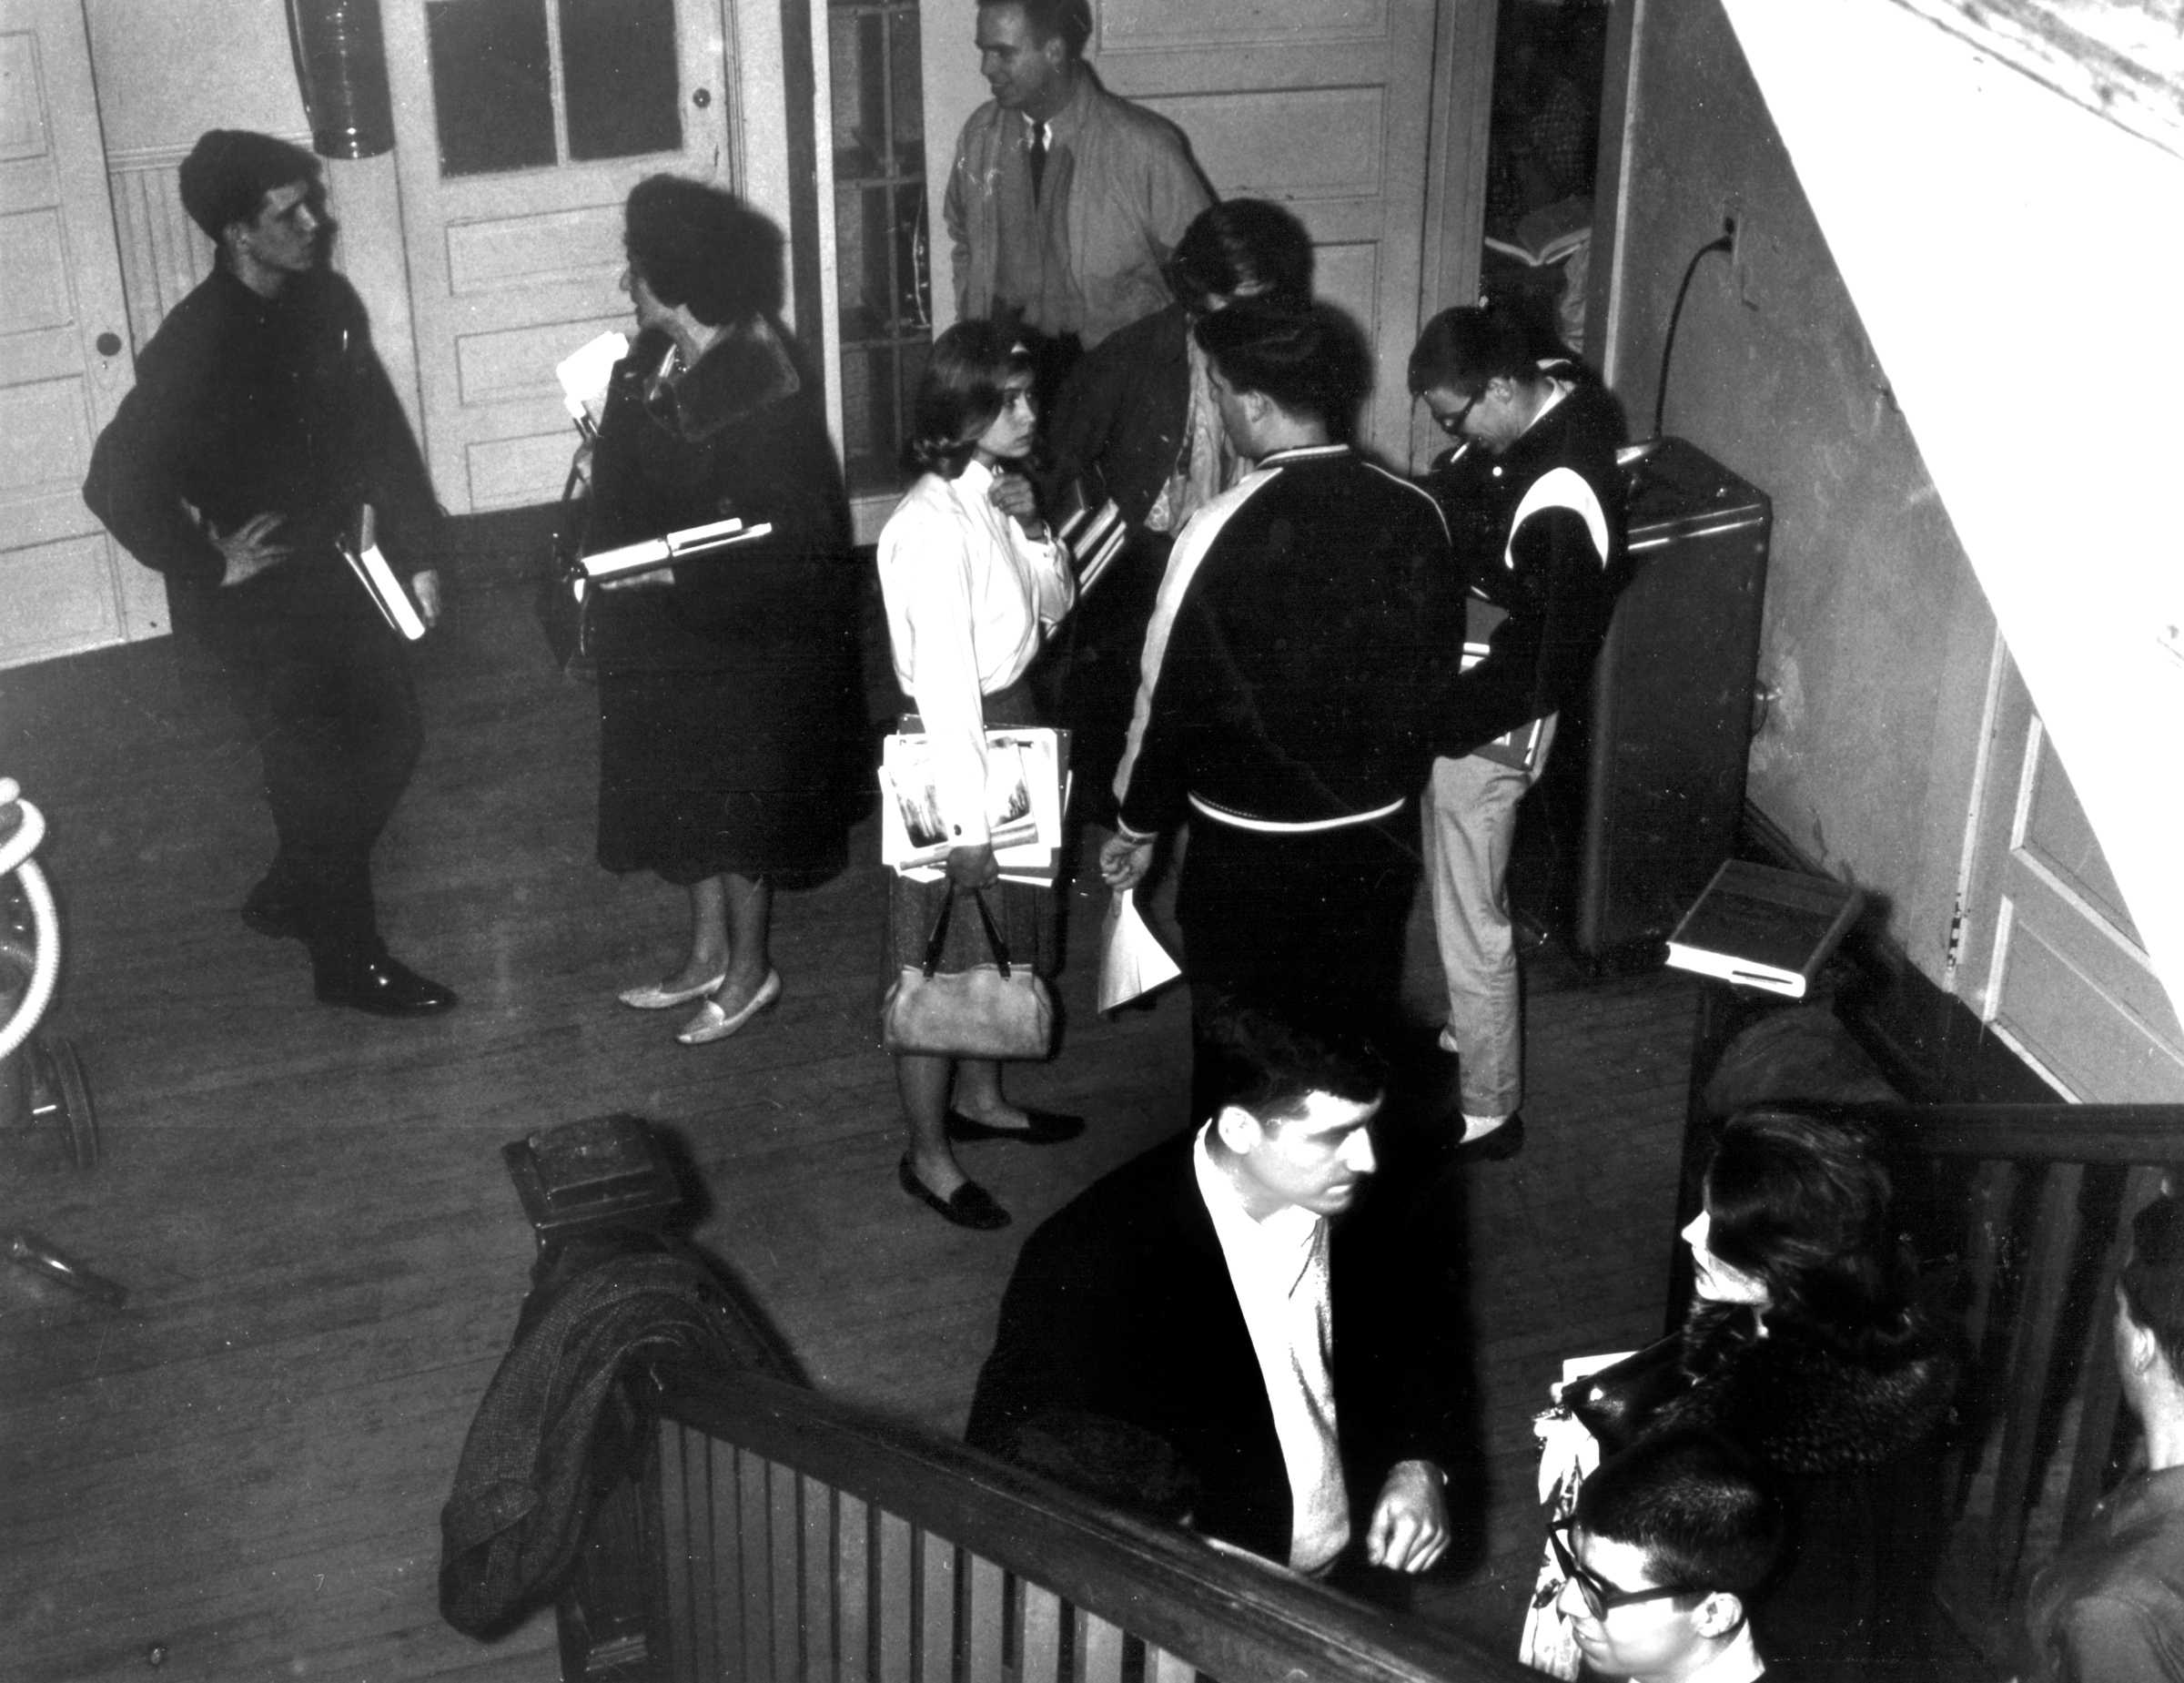 Spanish class getting out, main hallway, 1963.